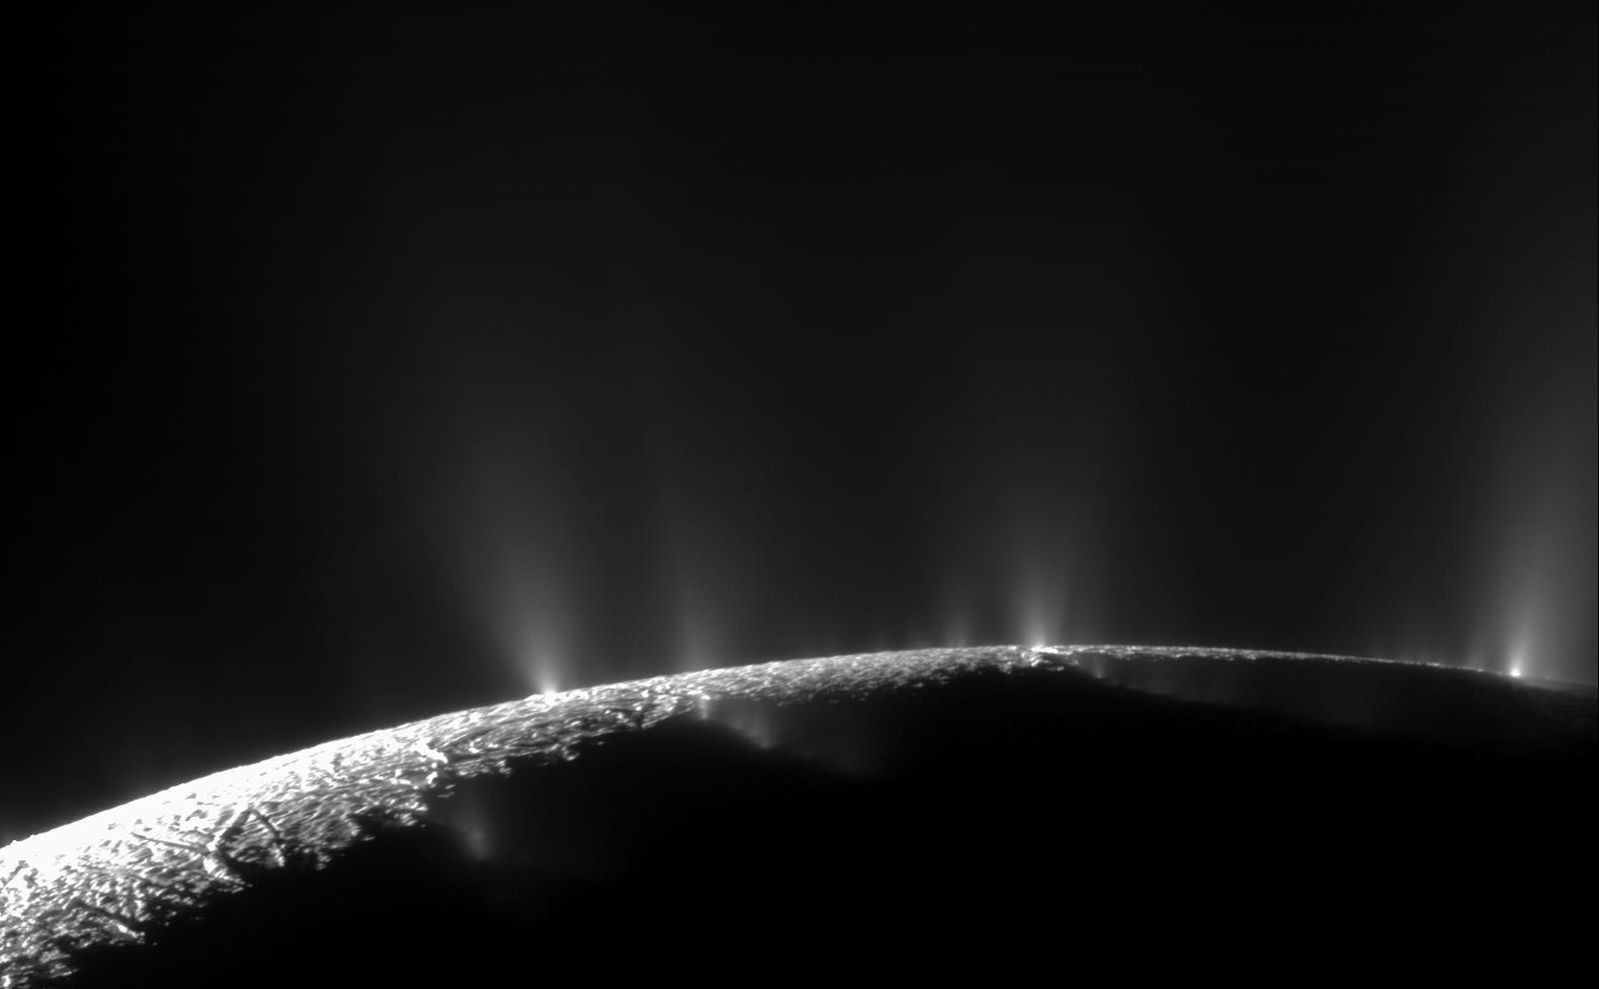 Scientists Use Cassini Data To Analyze Saturn's Moon Enceladus Compounds, Detect Methane In Plumes